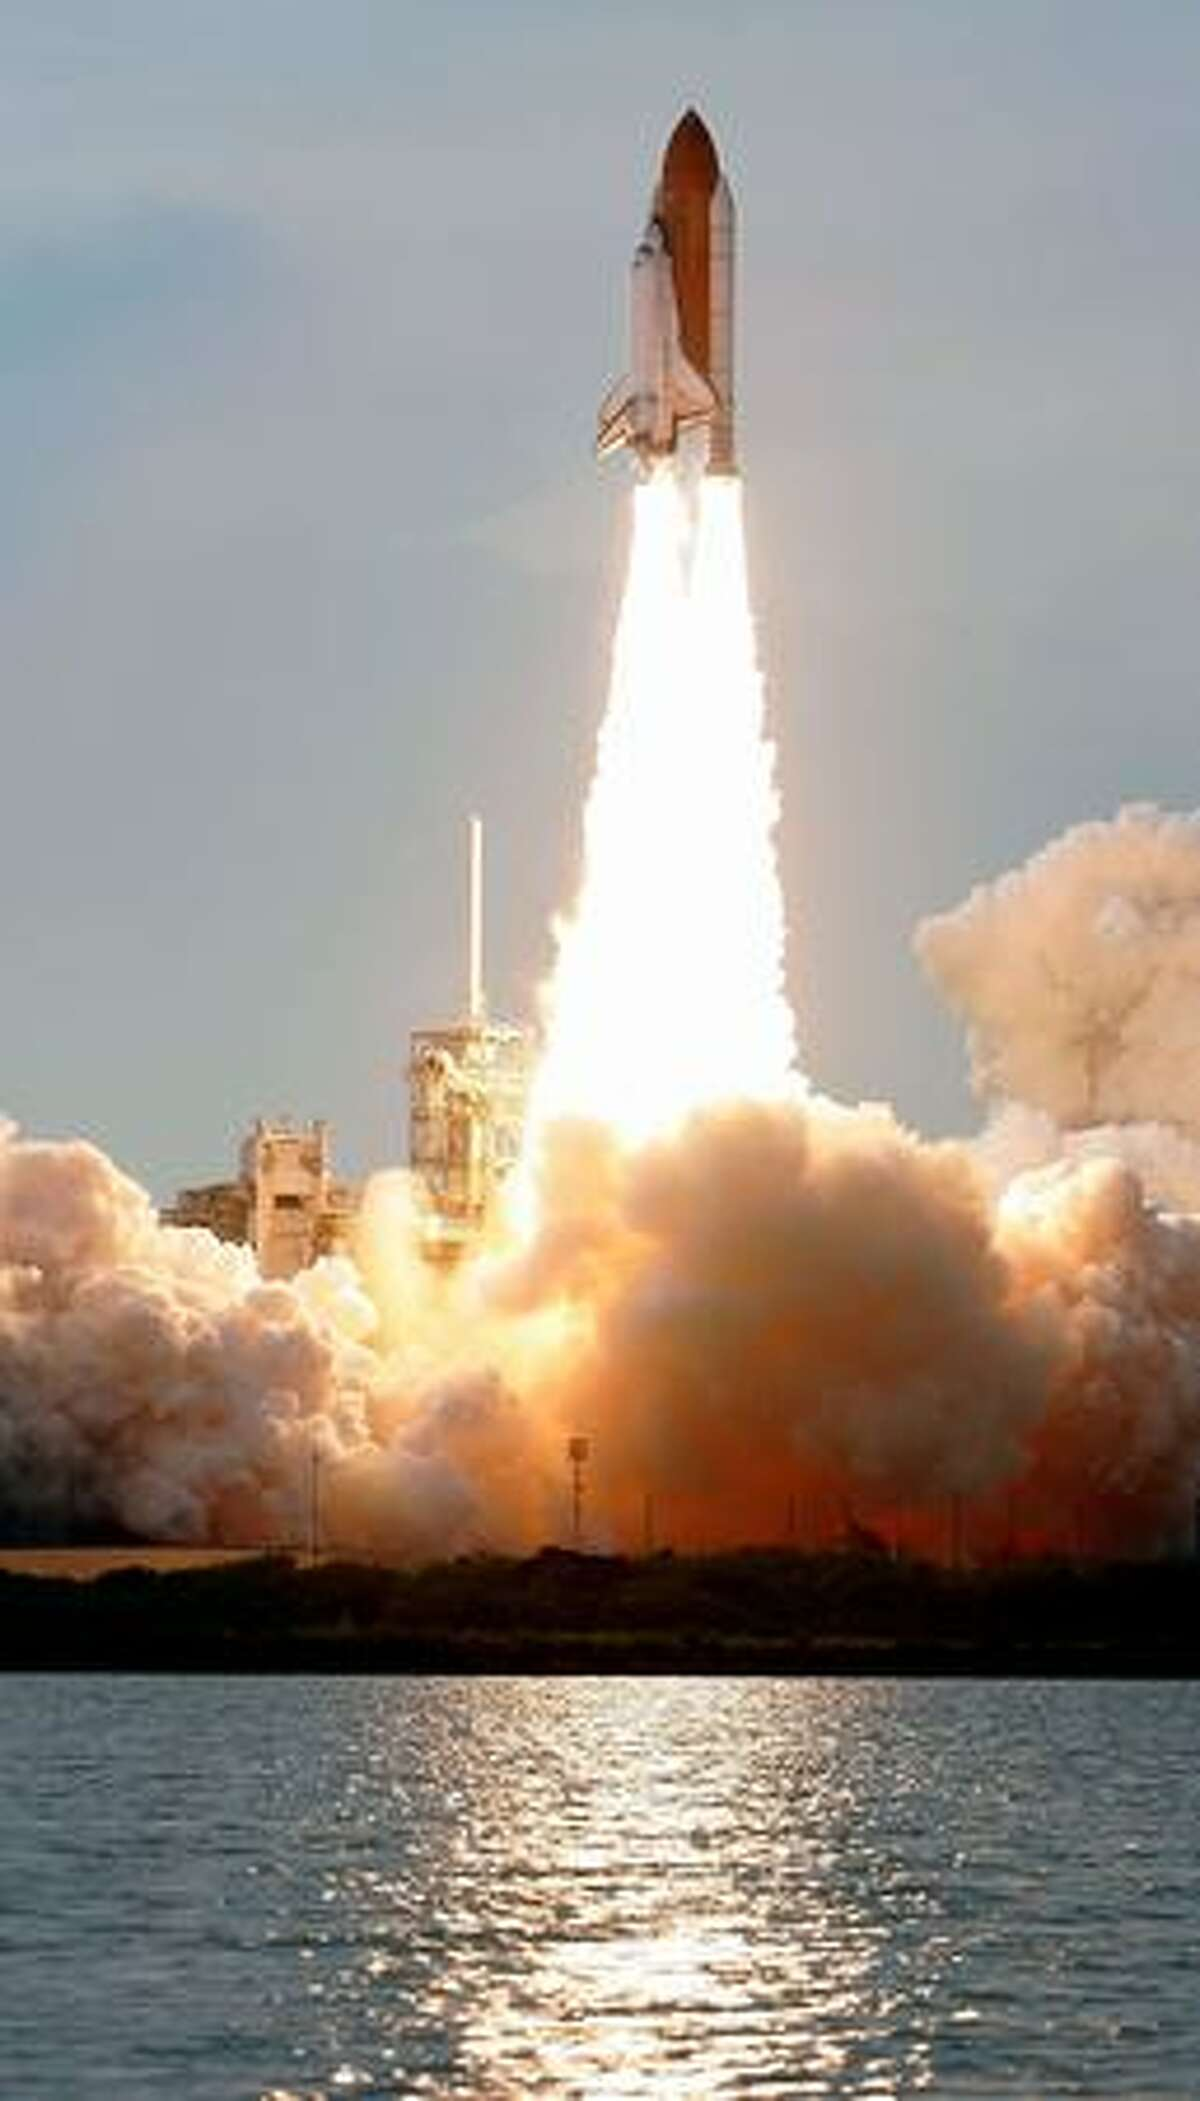 STS-127 Space Shuttle Endeavour launches from launch pad 39A at Kennedy Space Center July 15 in Cape Canaveral, Florida. After multiple delays due to hydrogen leaks and weather conditions, Endeavour is to deliver components of the Japan Aerospace Exploration Agency's Kibo laboratory to the International Space Station.